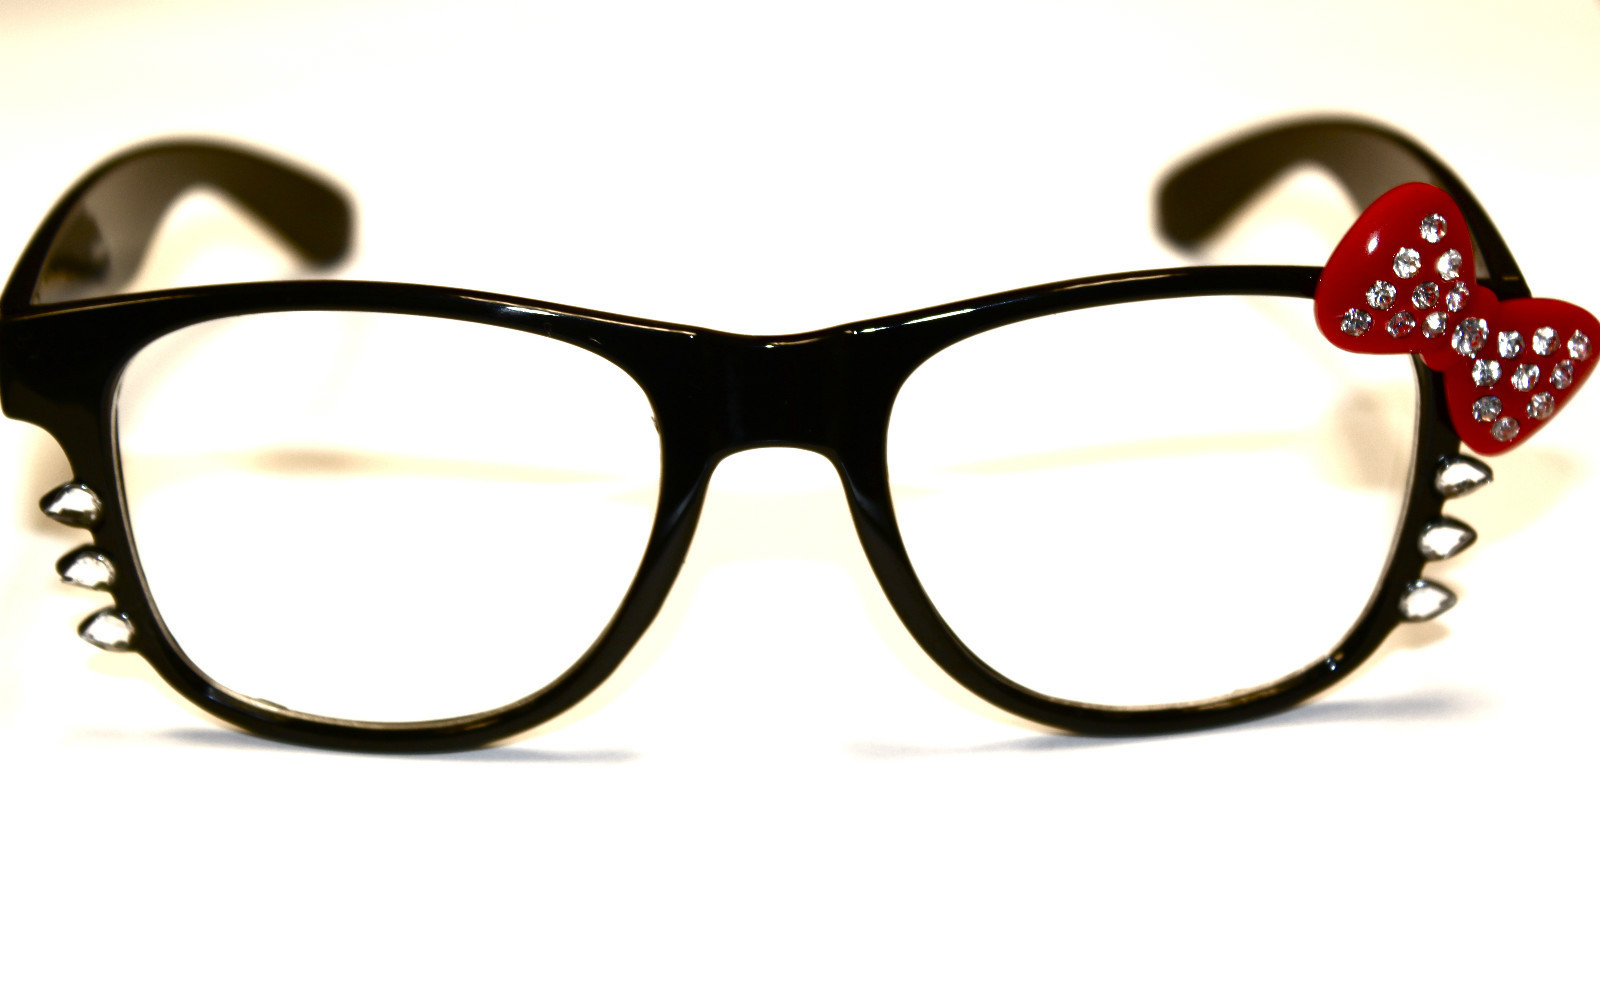 1600x1003 Nerd Glasses Geek Glasses Clipart Nerd Black With White Free